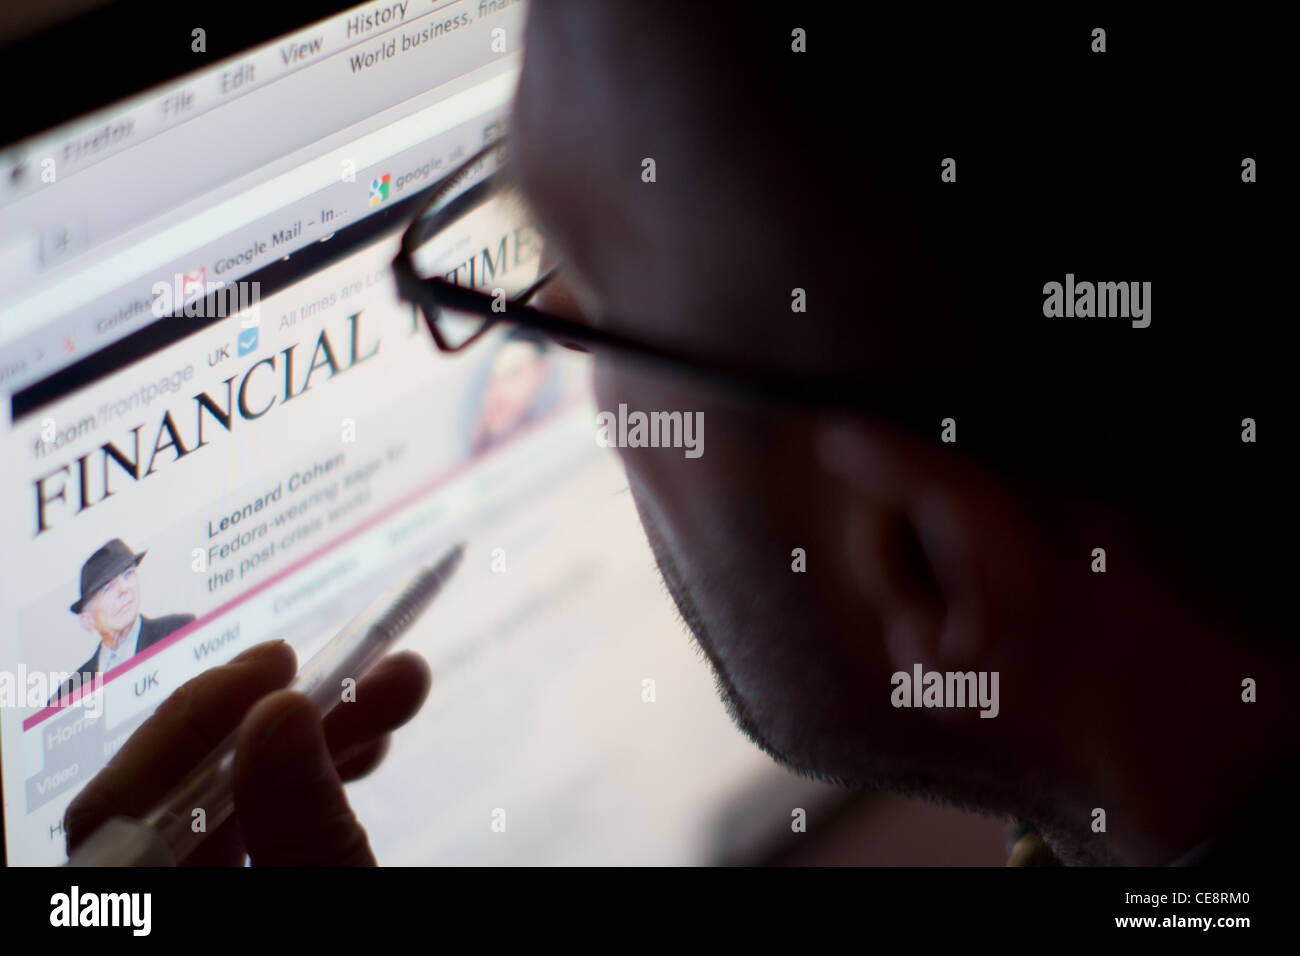 Financial Times online web site Photo Stock